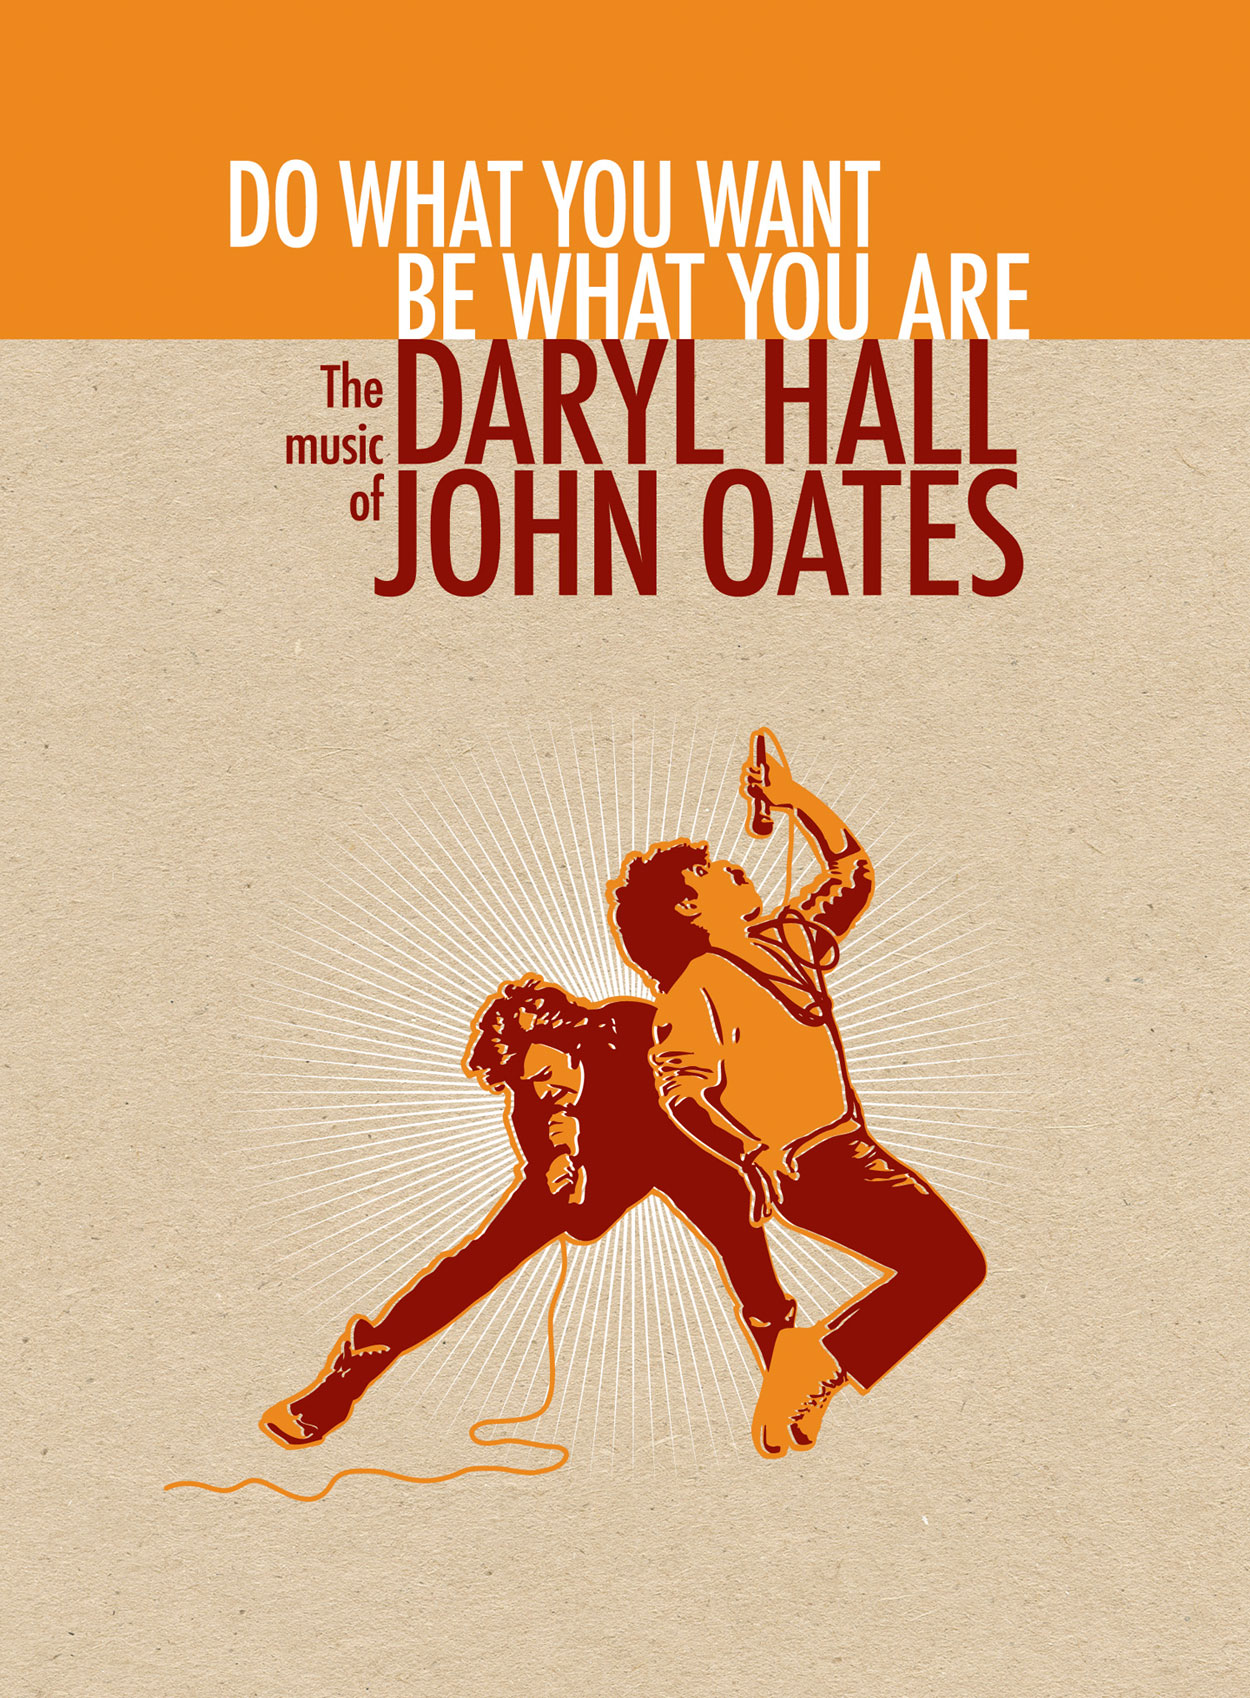 Hall and Oates: Be What You Want... box set reissue / repackage